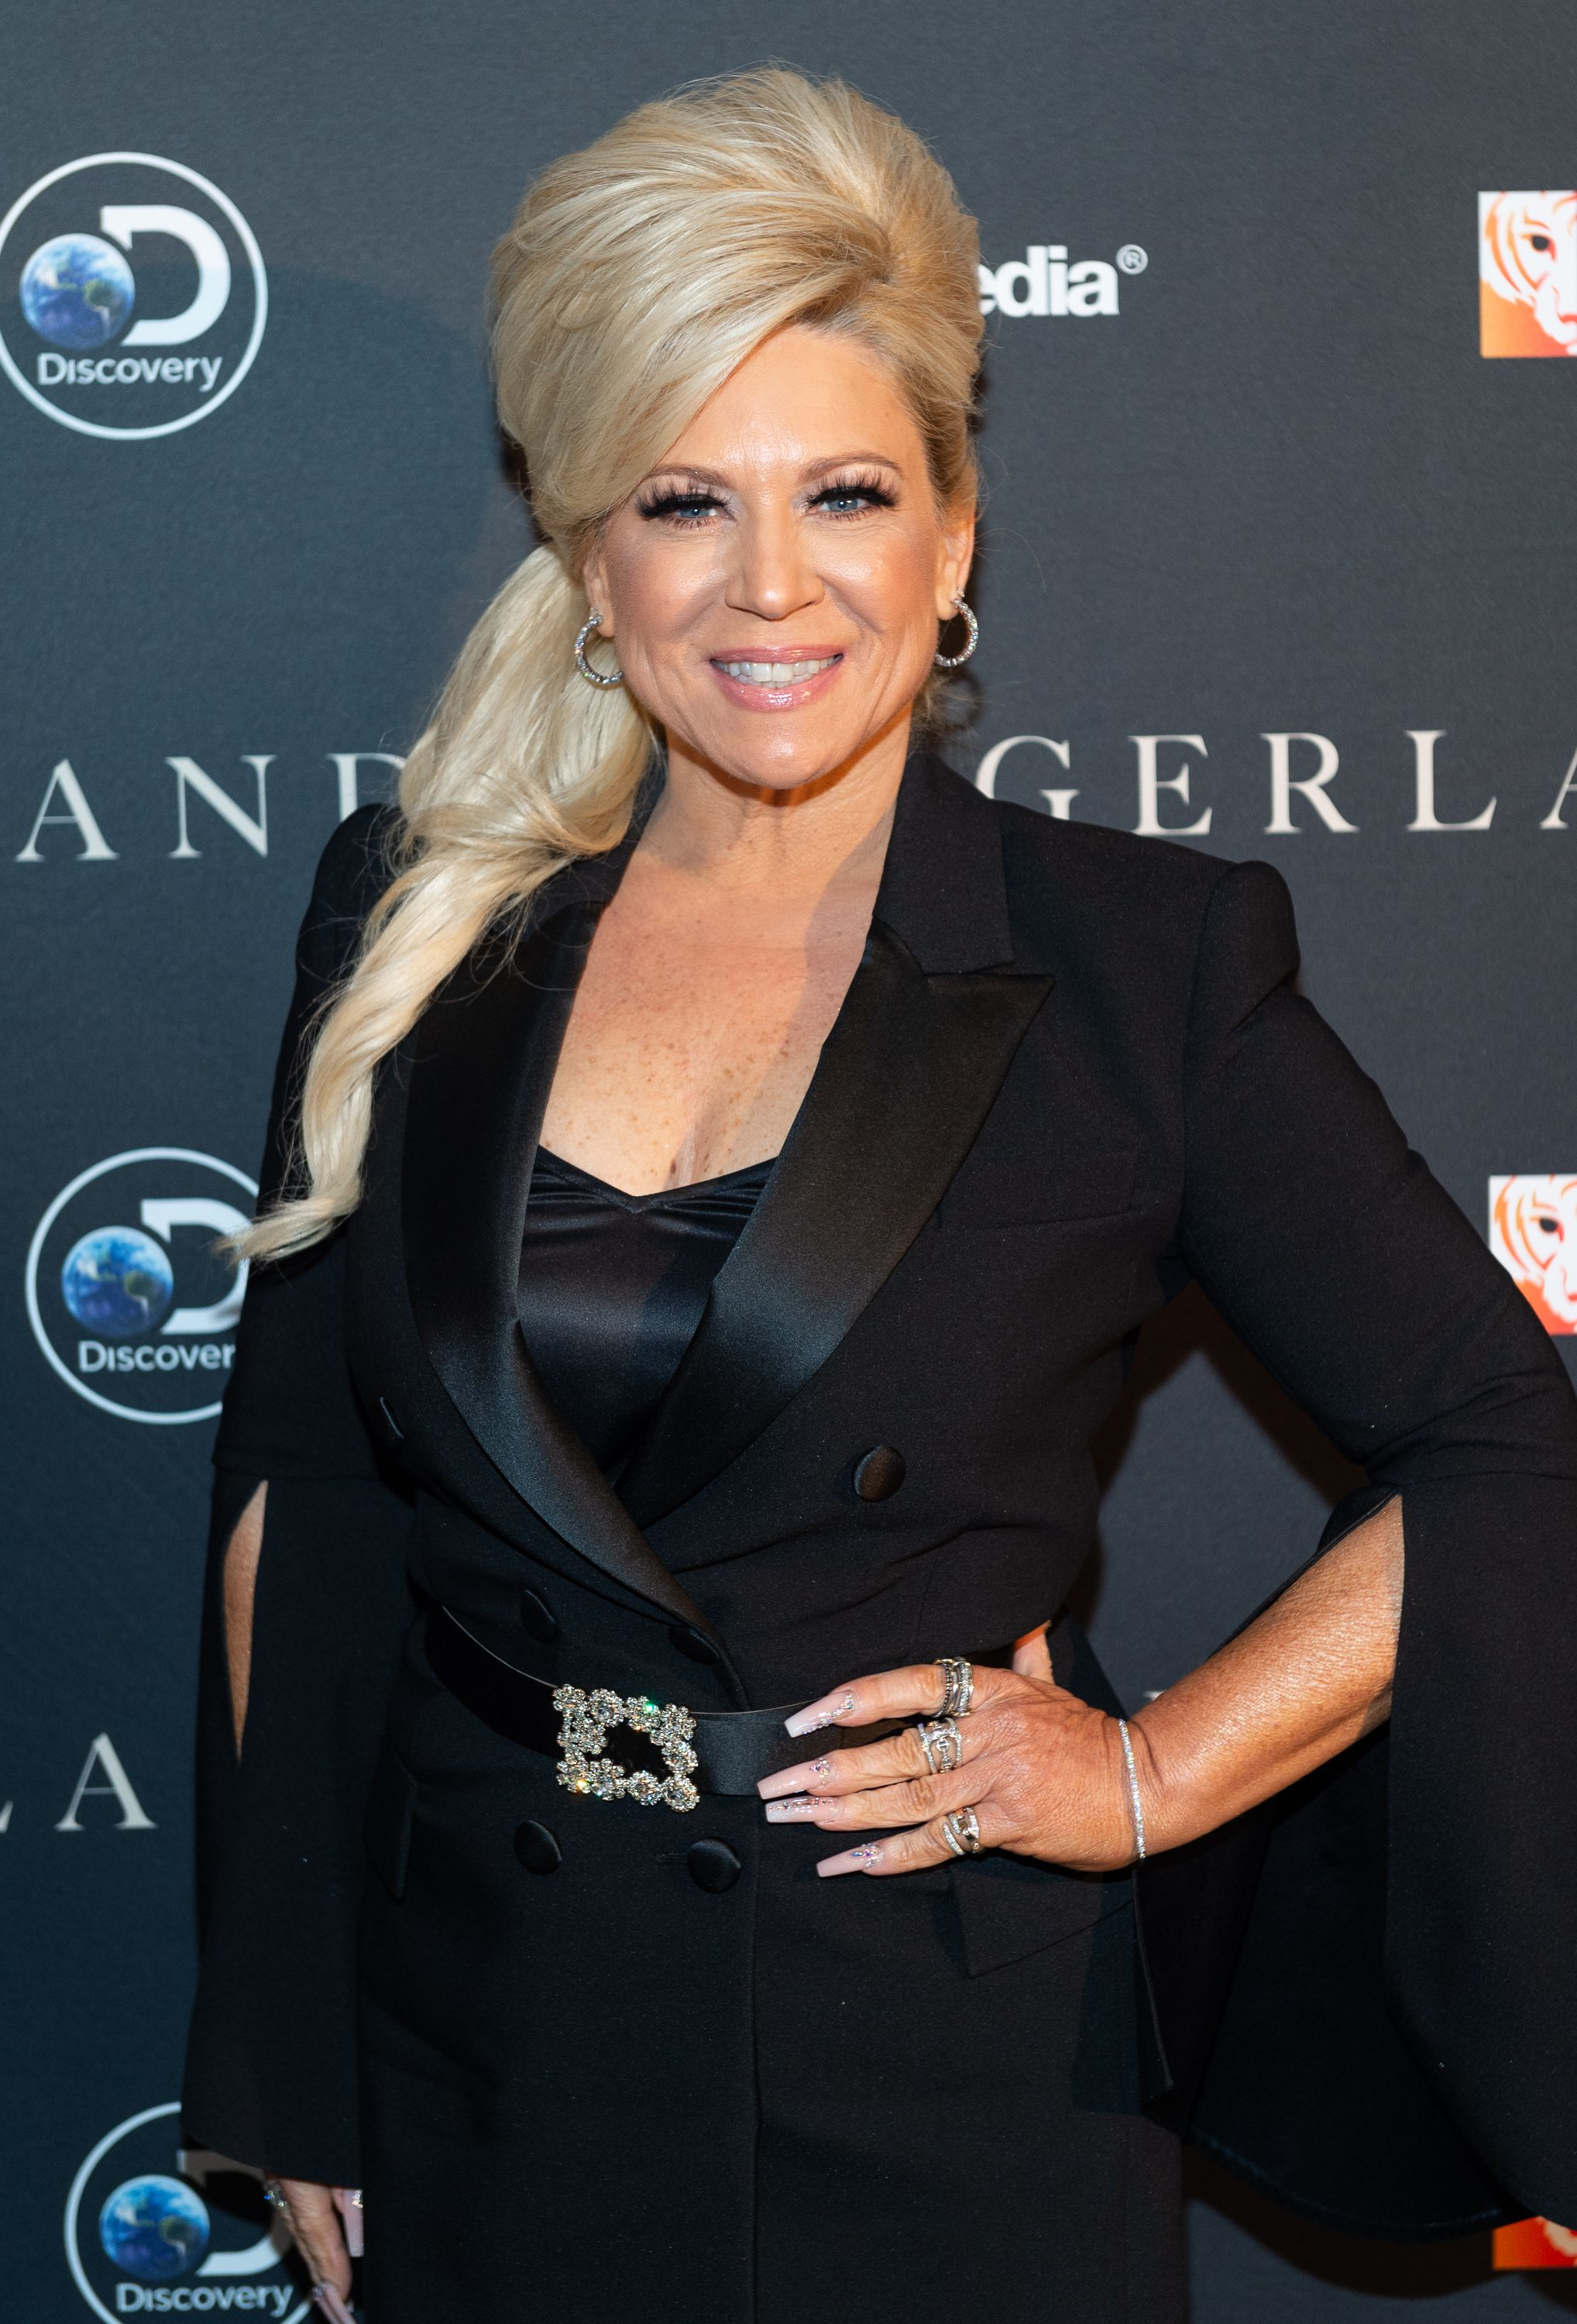 """Theresa Caputo atthe """"Tigerland"""" New York screening at Crosby Street Hotel on March 27, 2019, in New York City 